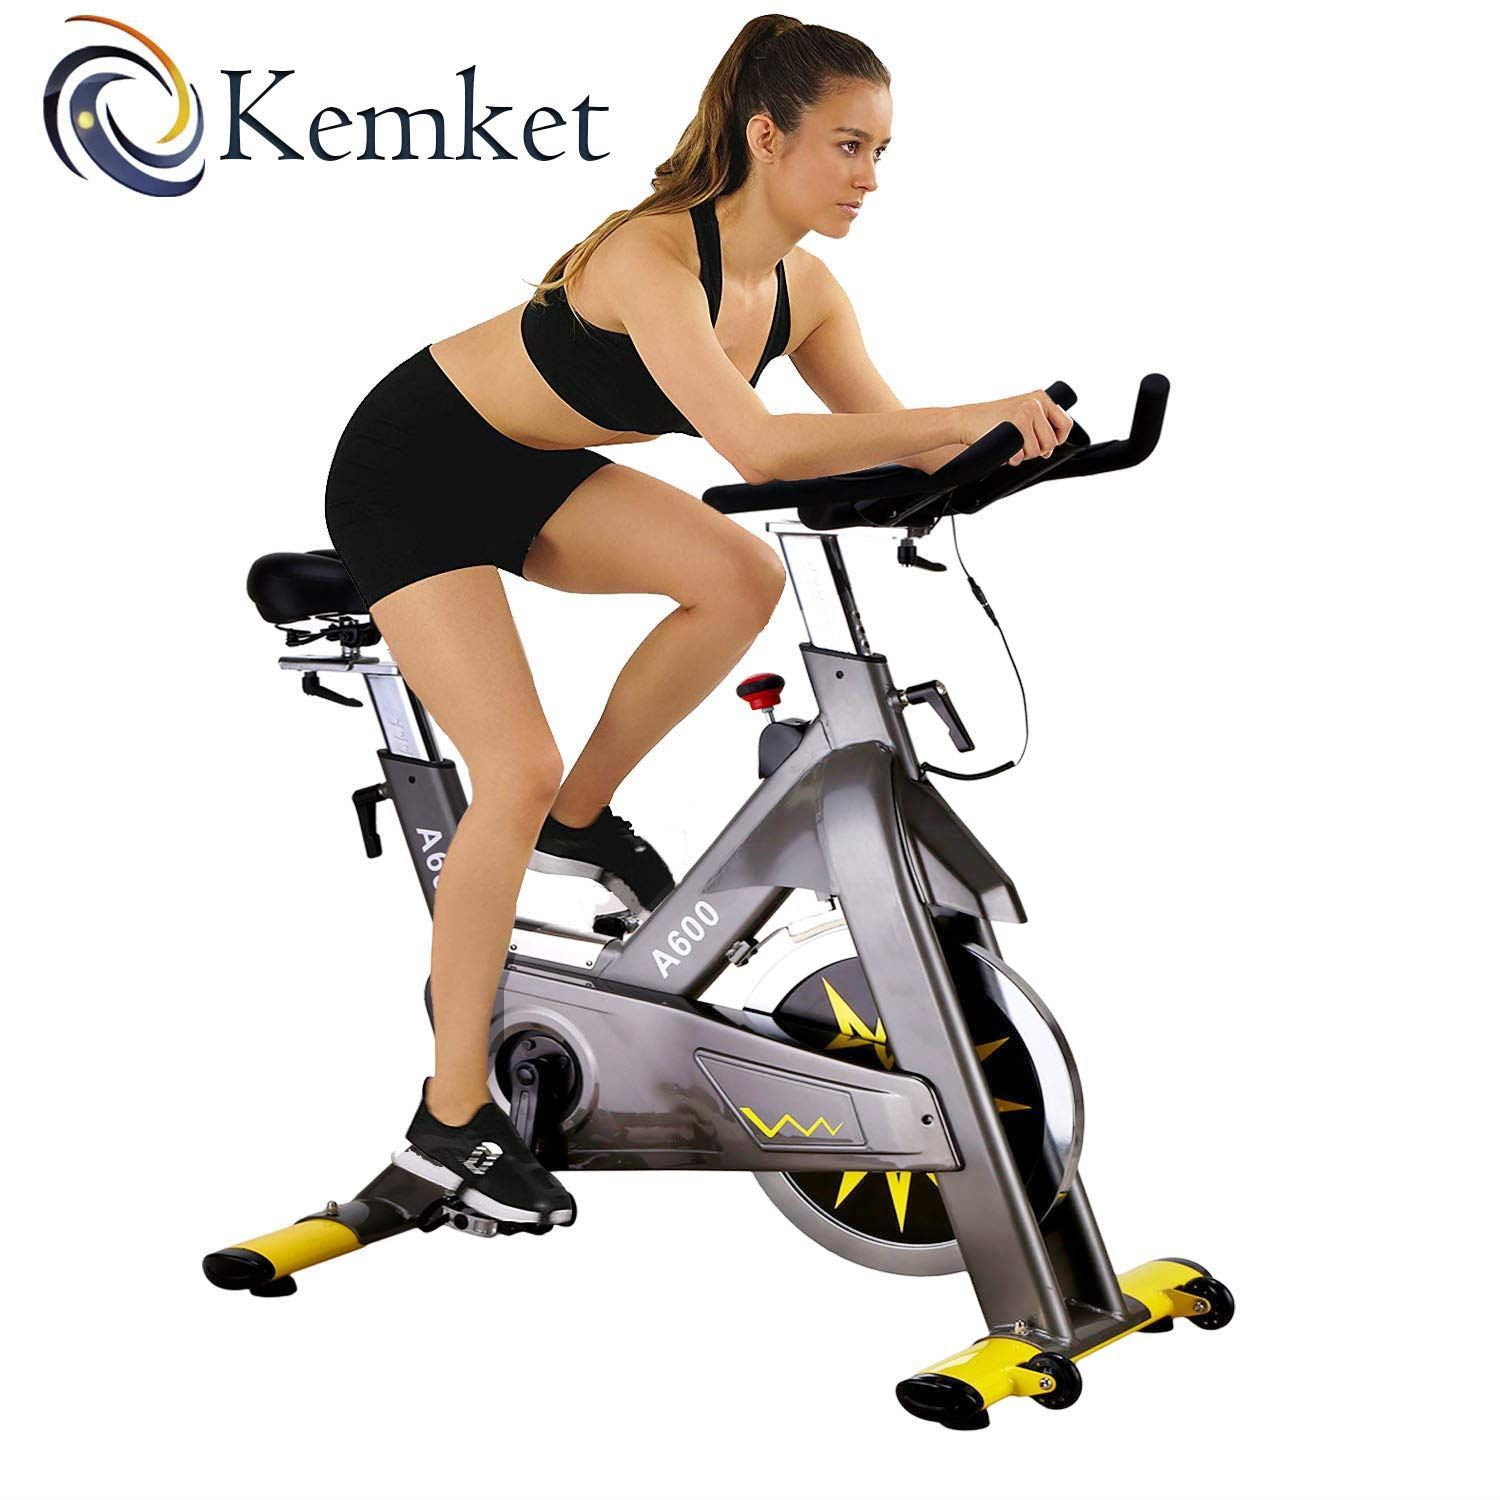 Kemket A600 Indoor Cycling Exercise Commercial Heavy Frame standards Spin Bike,Direct Belt Driven 20kg Flywheel 3-Piece Crank,7-Function Monitor,Heart Rate Sensors 1 YEAR WARRANTY